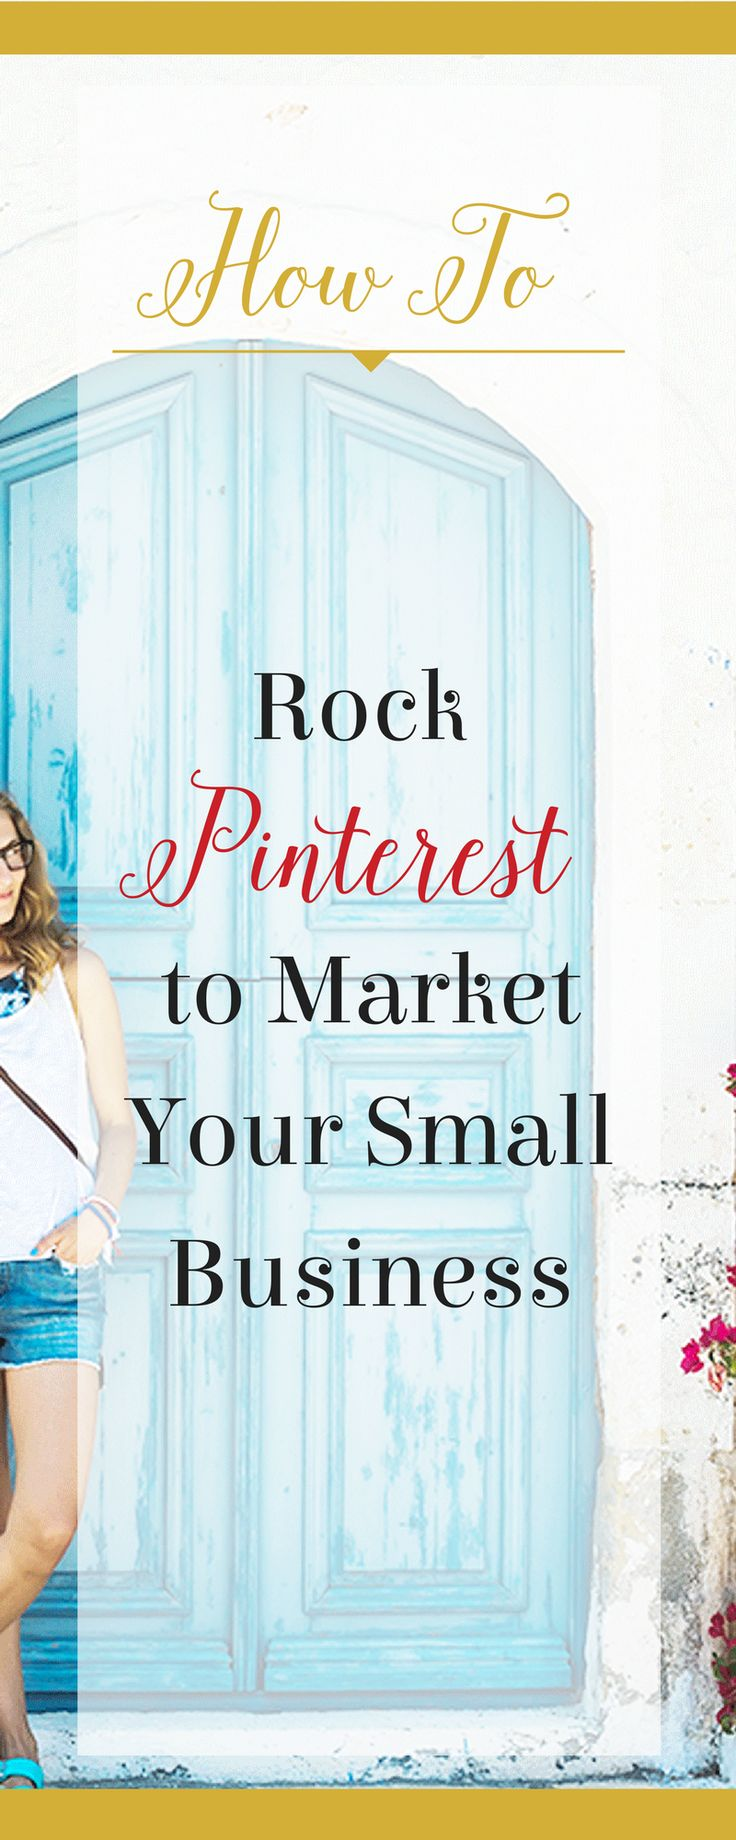 How to Rock Pinterest to Market Your Small Business: Pinterest can help small business owners get more traffic, make more sales, collect market intelligence which helps with future content and product development, raise their brand profile and develop loyal fans and brand advocates, Pinterest Expert Anna Bennett said. Read more tips for businesses at https://www.ncrsilver.com/how-to-rock-pinterest-to-market-your-small-business/